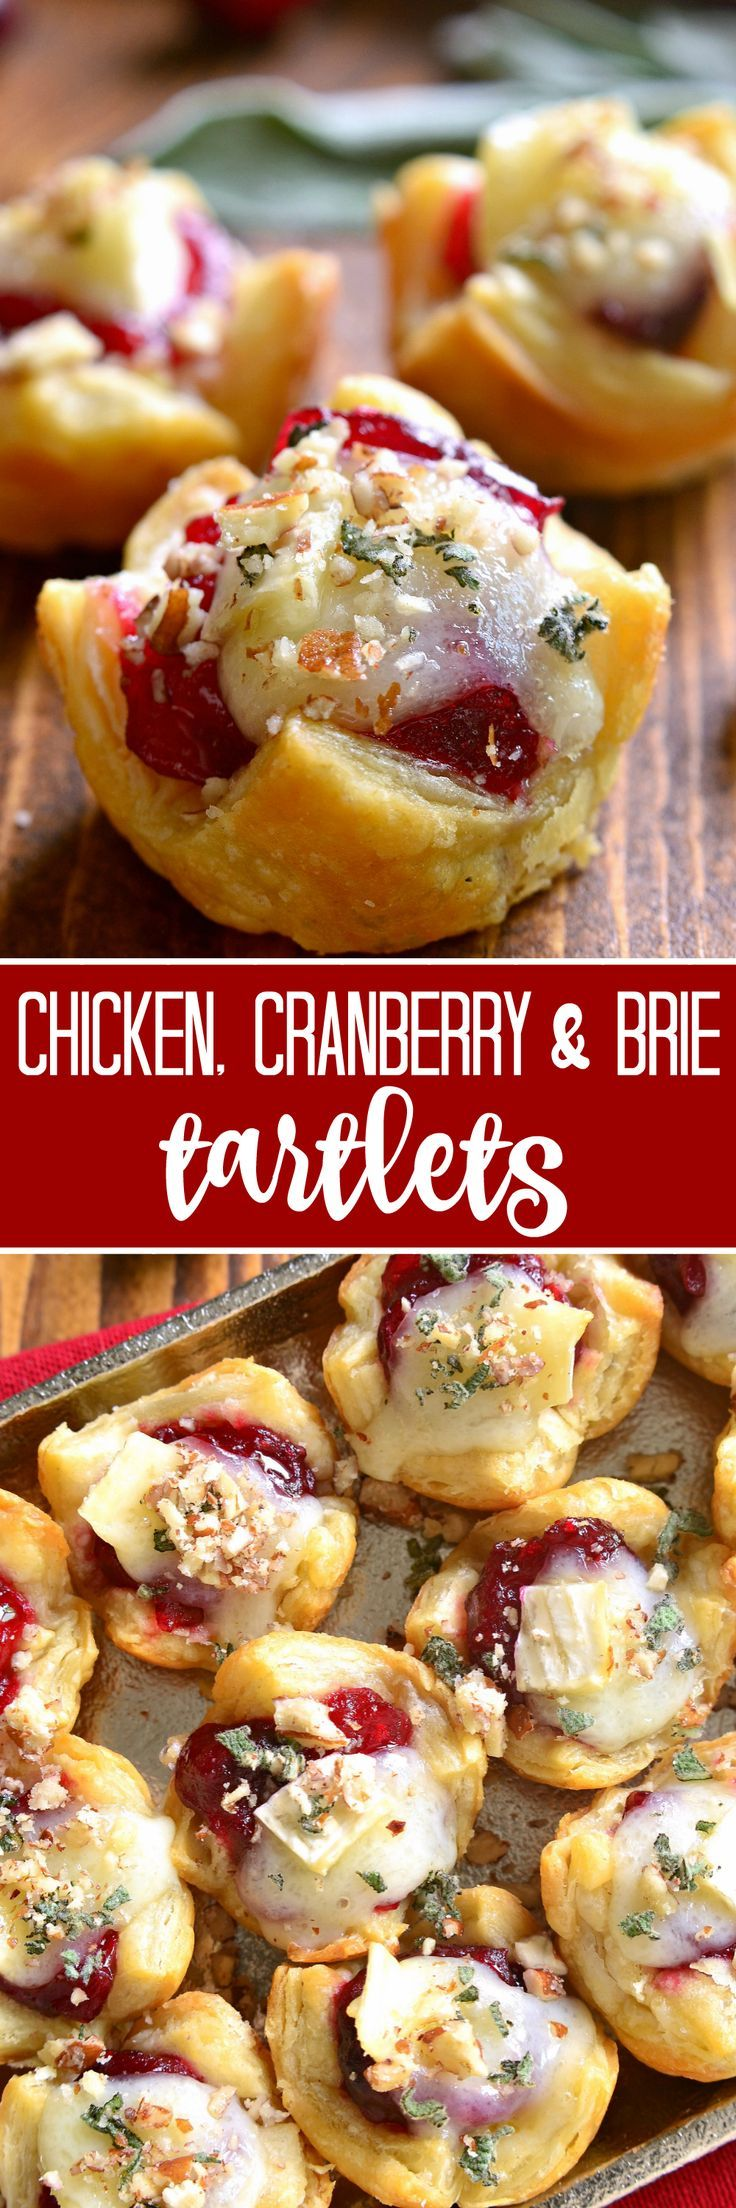 These Chicken, Cranberry & Brie Tartlets combine all the best flavors of the season in one delicious little bite. Perfect for all your holiday parties, these tartlets are sure to become a new favorite!